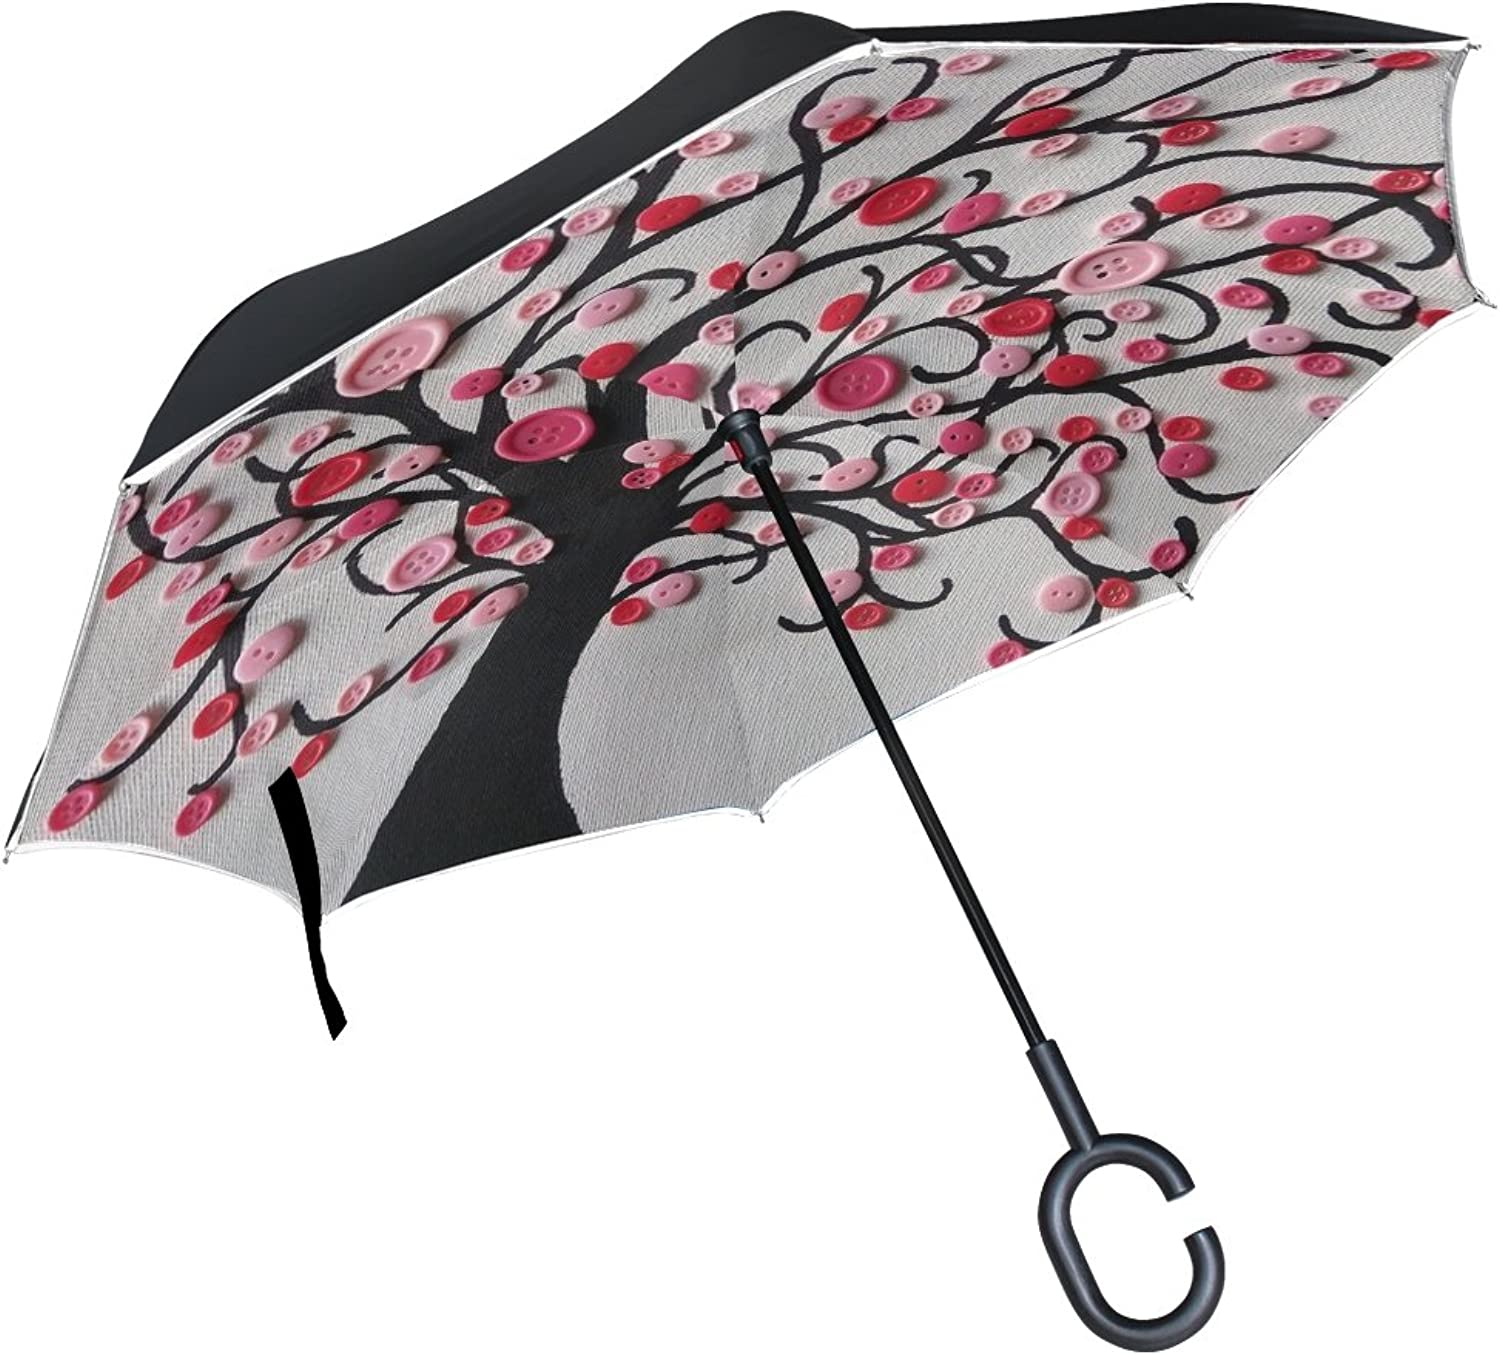 Double Layer Ingreened Knots Tree Pink Umbrellas Reverse Folding Umbrella Windproof Uv Predection Big Straight Umbrella for Car Rain Outdoor with CShaped Handle